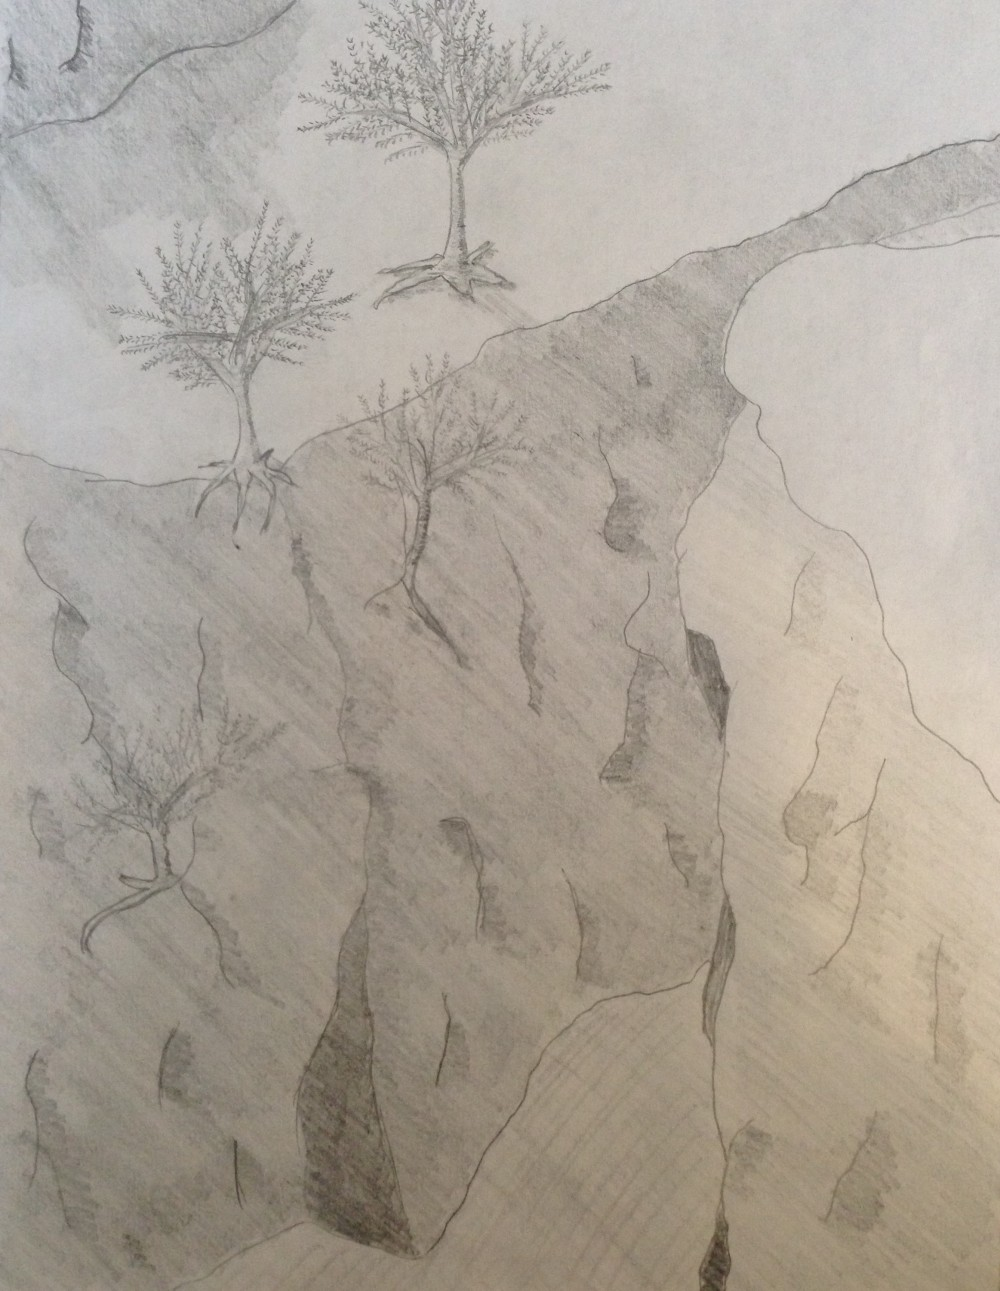 Drawing No. 17 – Trees by the Cliff